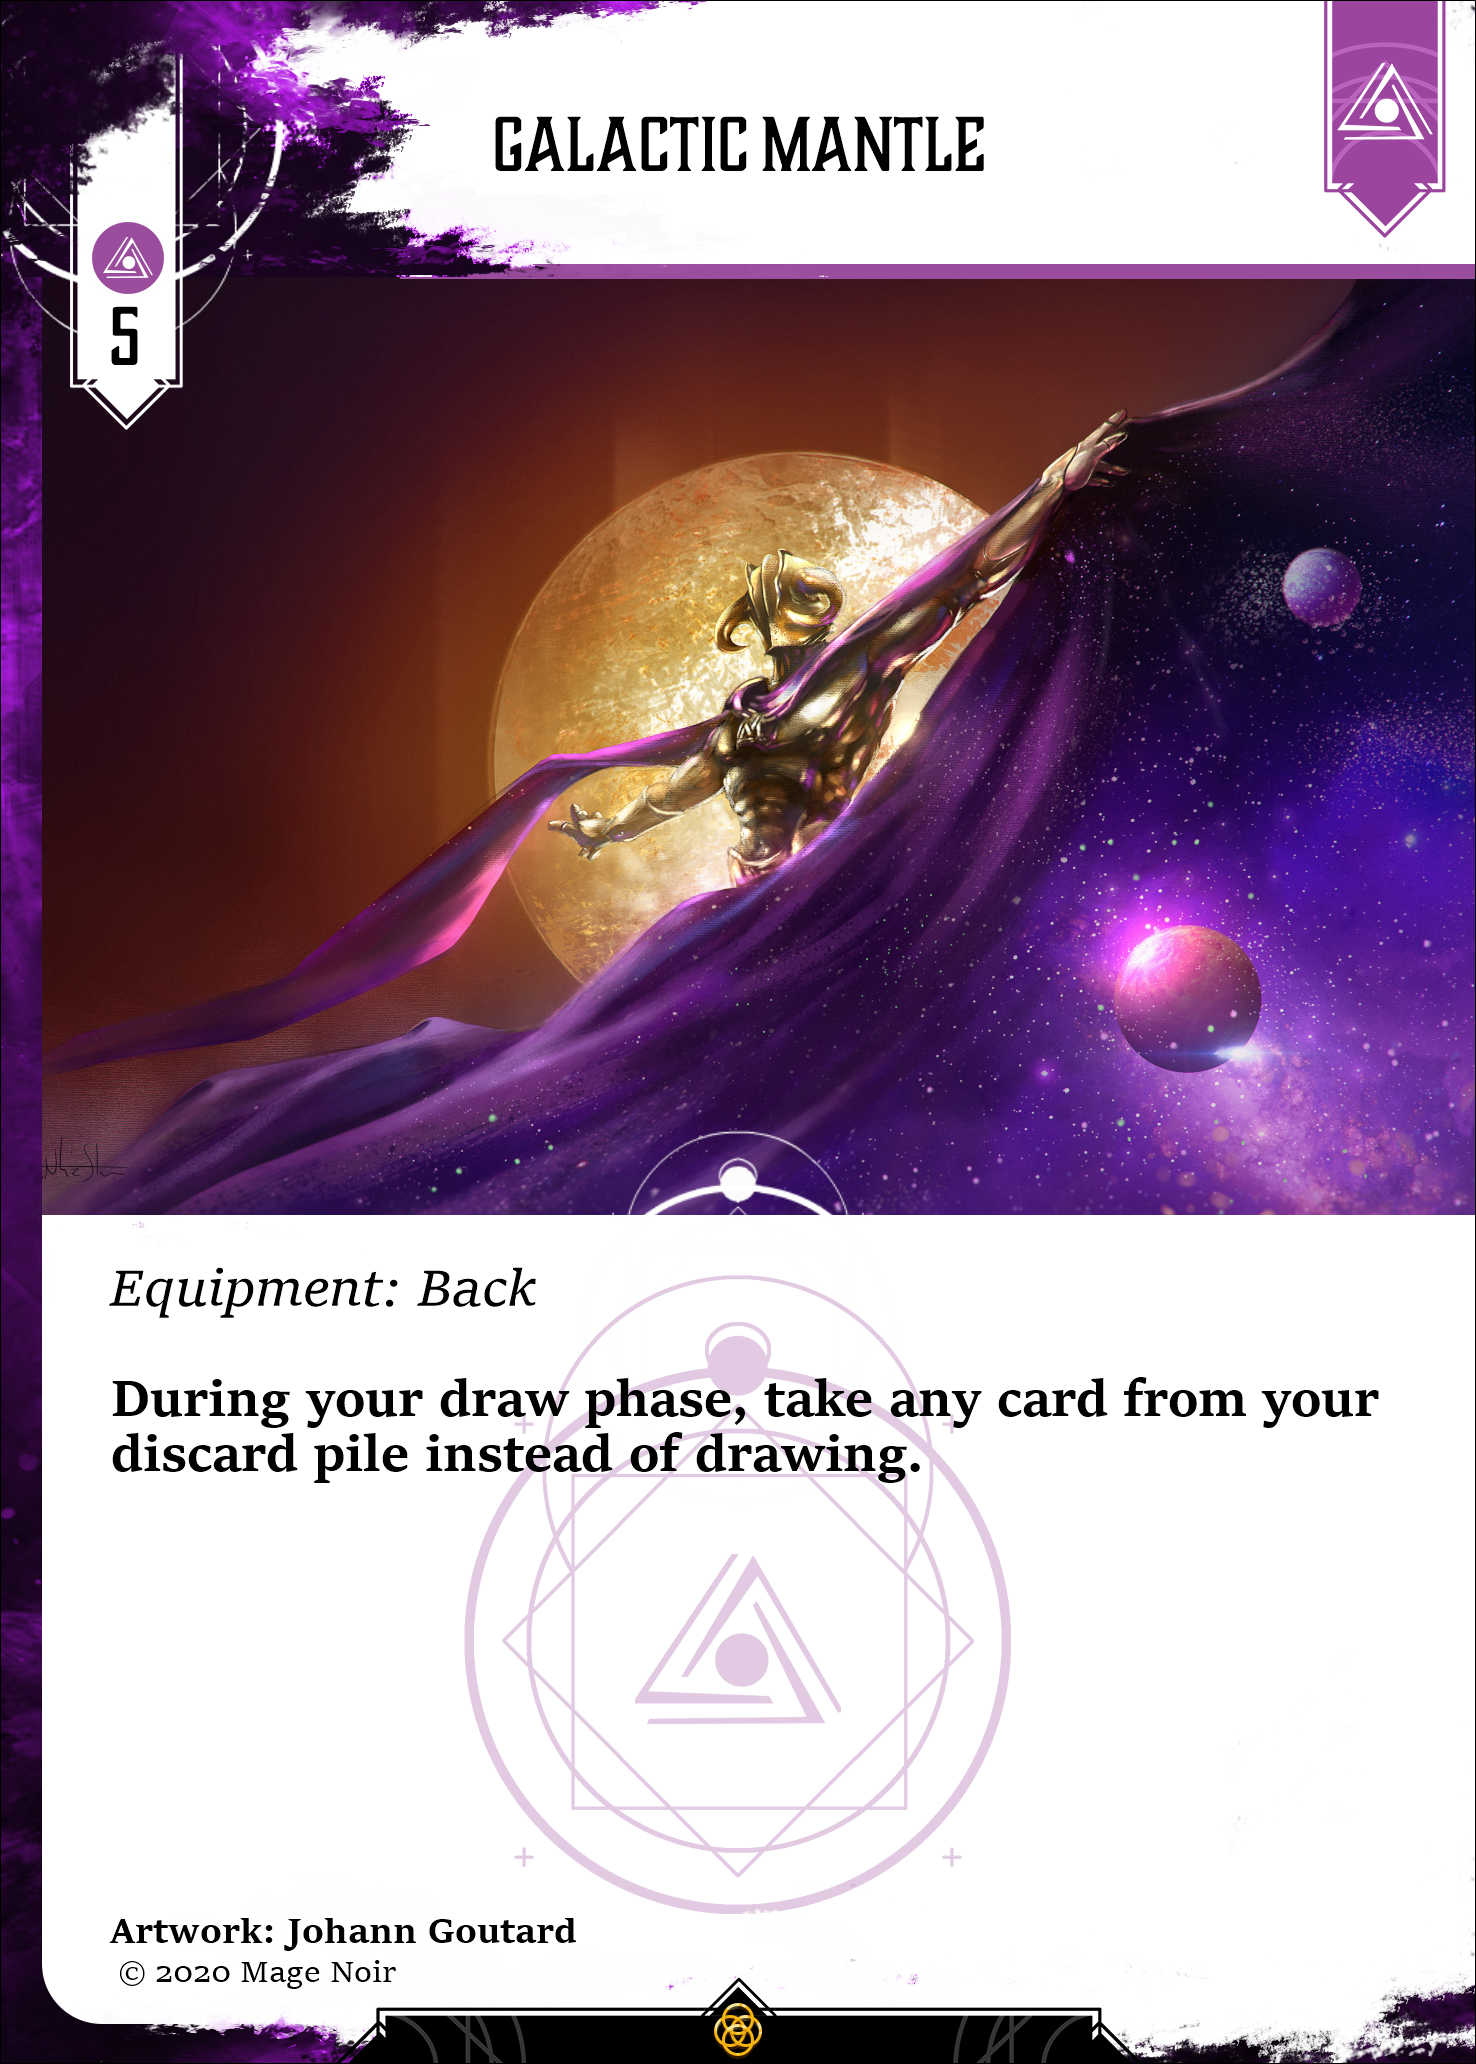 Galactic mantle card